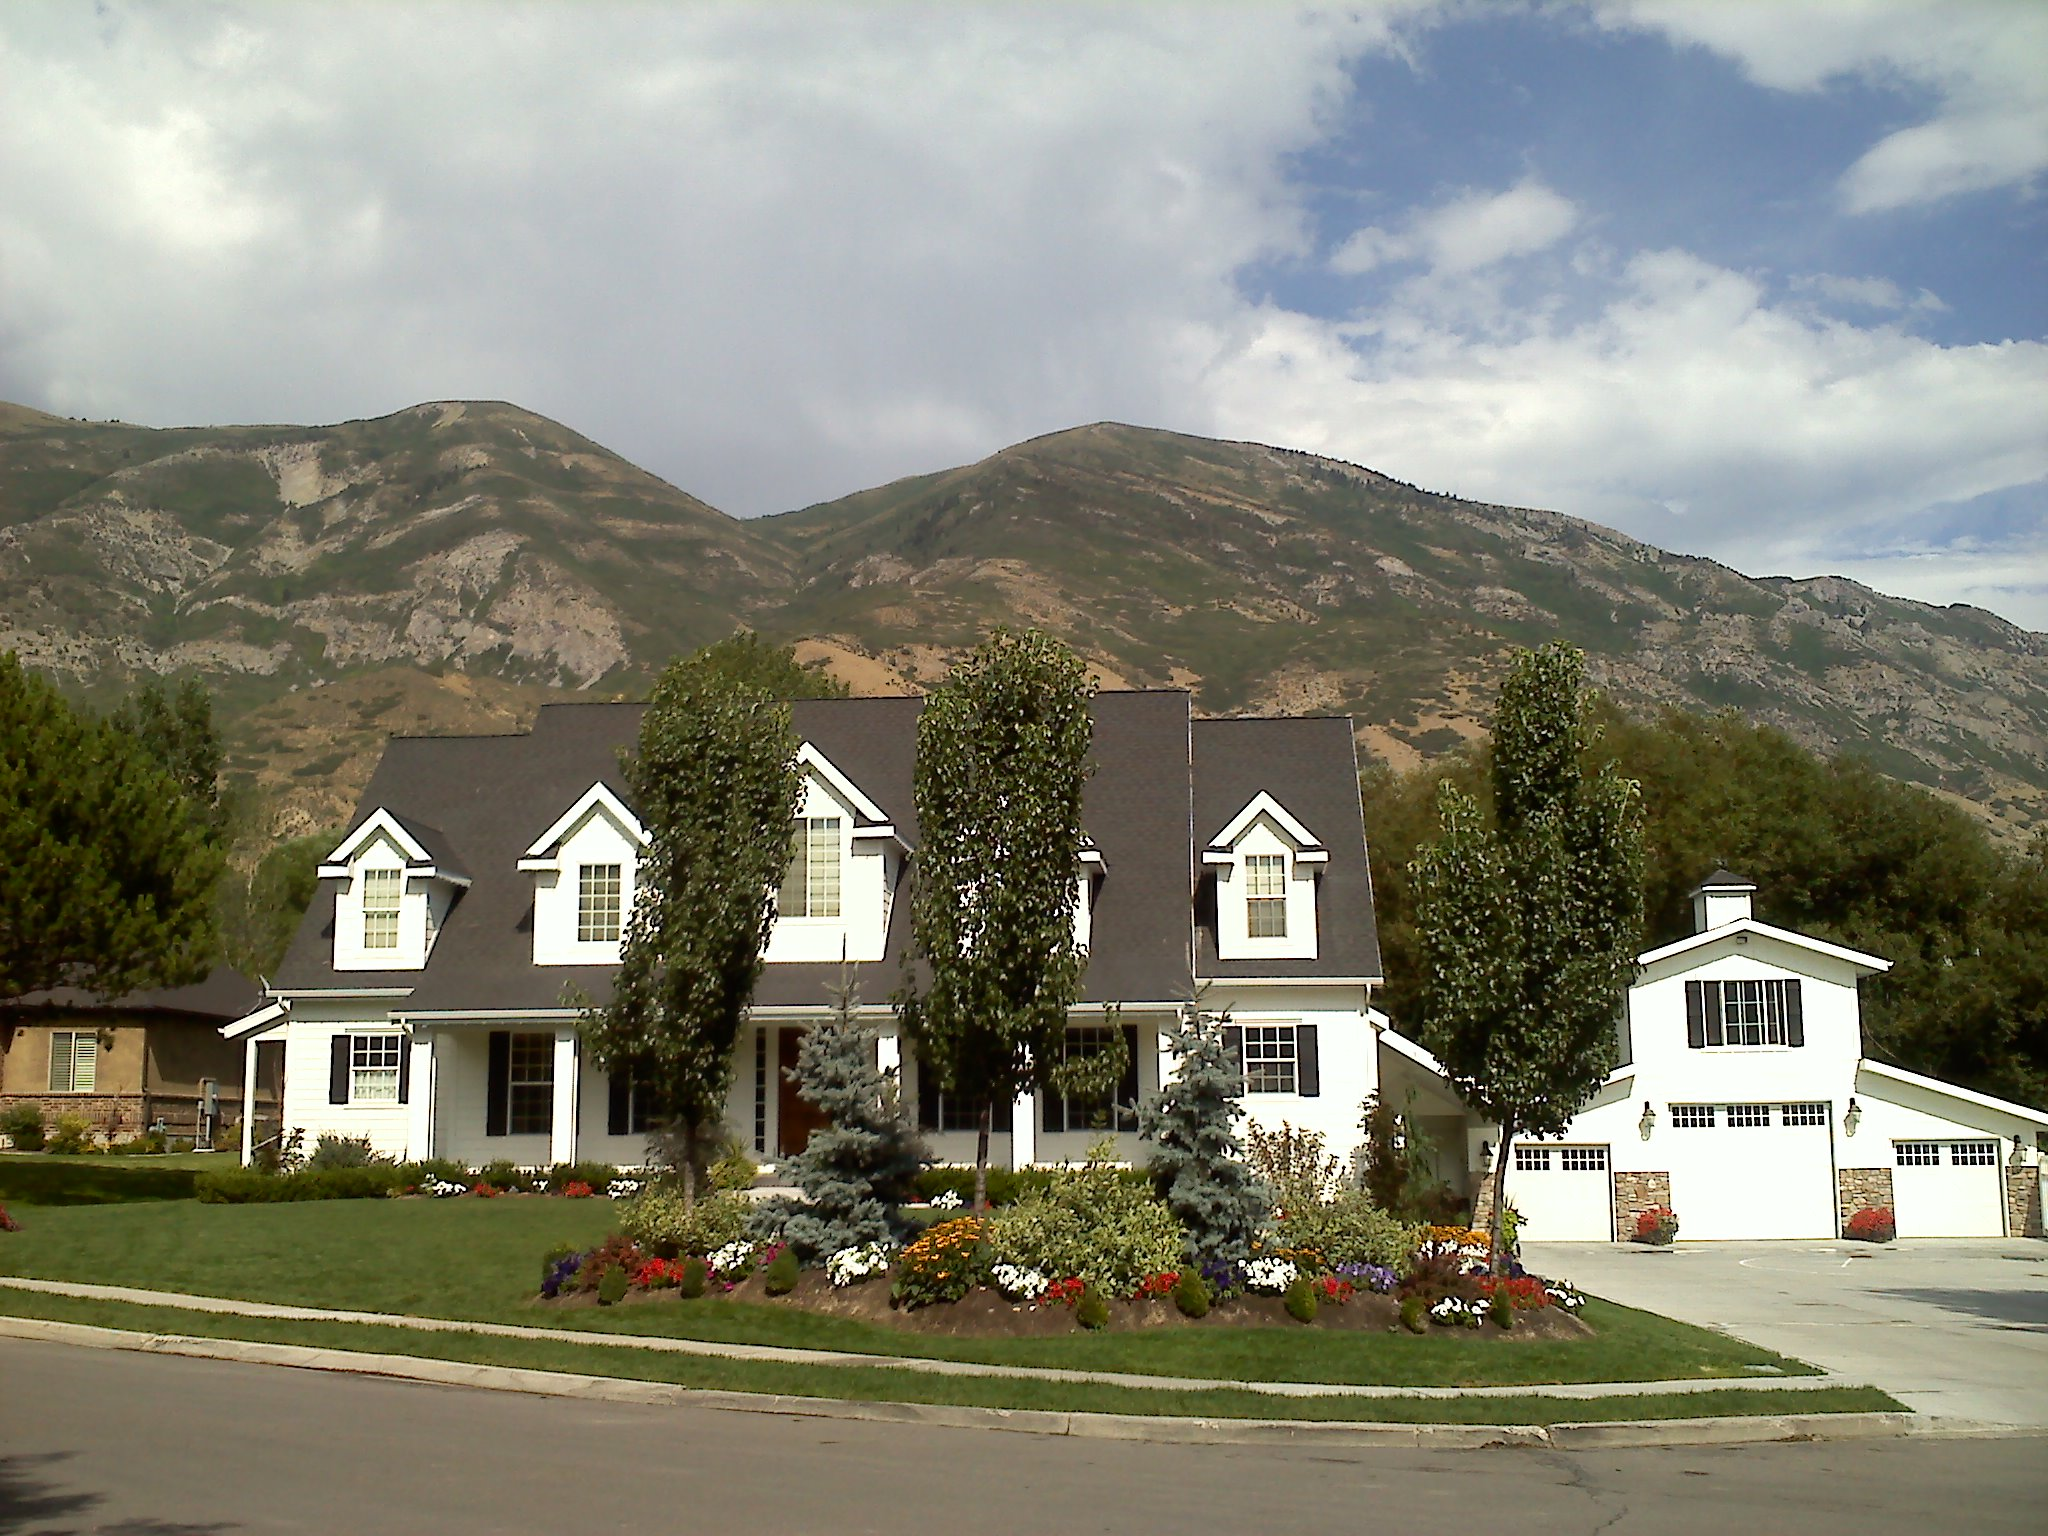 Demille residence on Meadow Drive